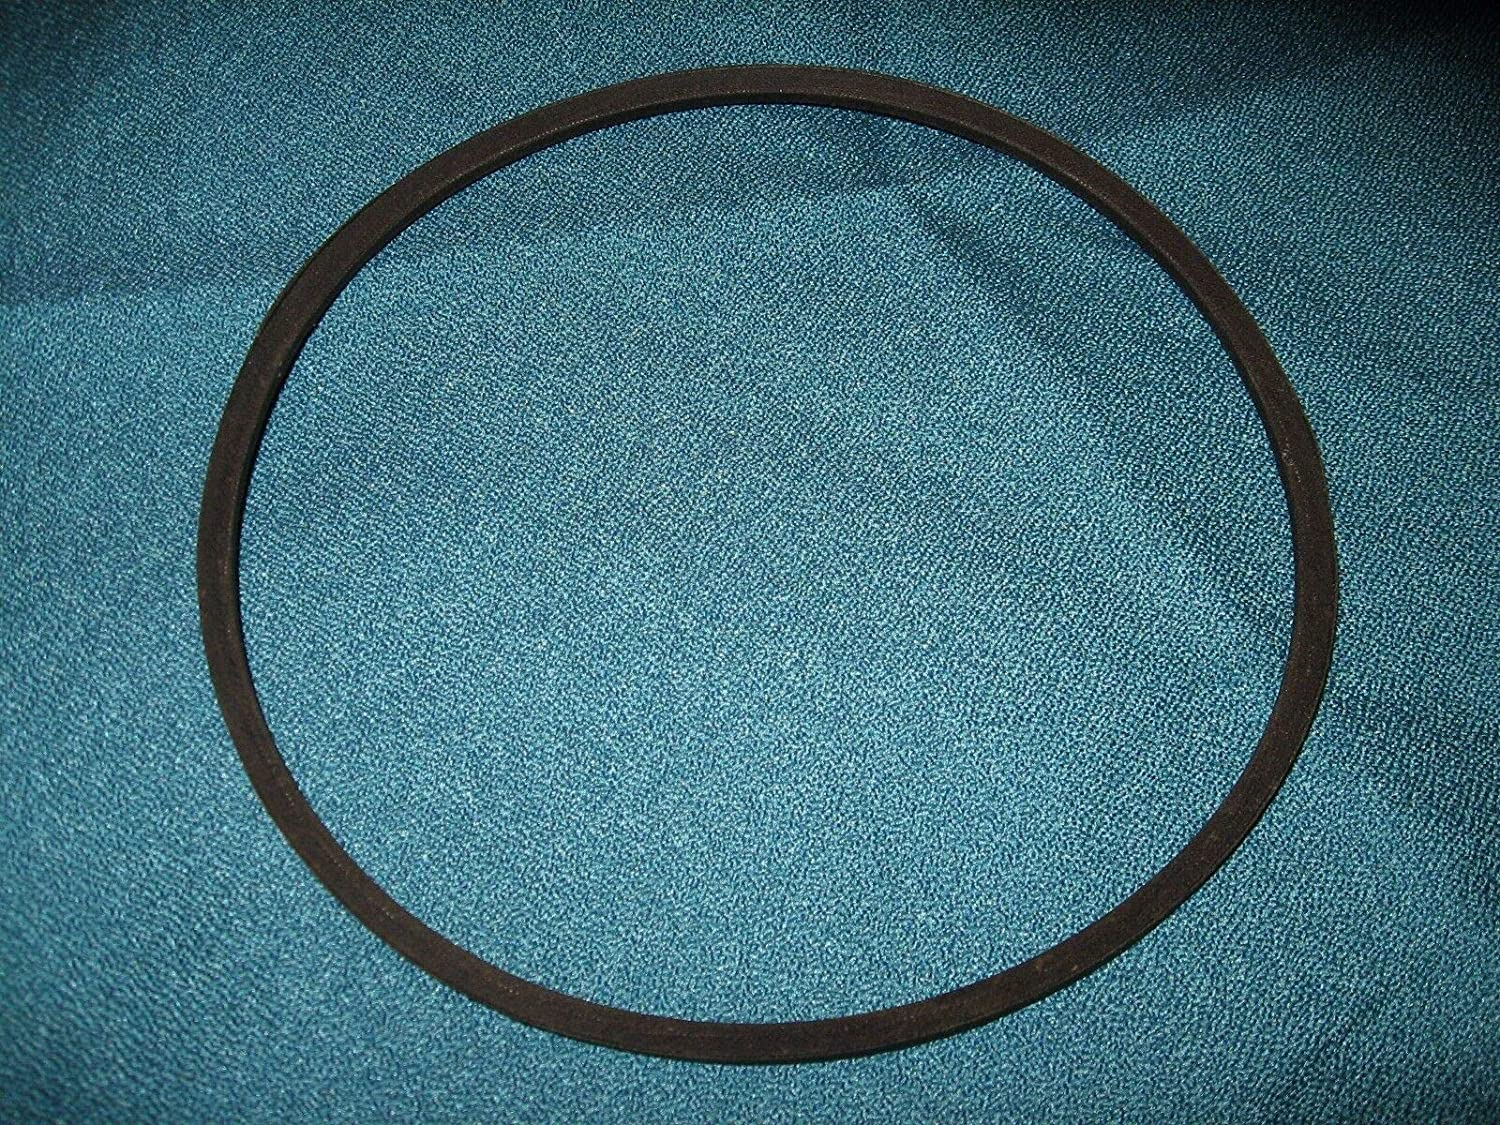 NEW Max 71% OFF DRIVE BELT V FOR CRAFTSMAN SAW 137.224120 Max 48% OFF BAND SEARS